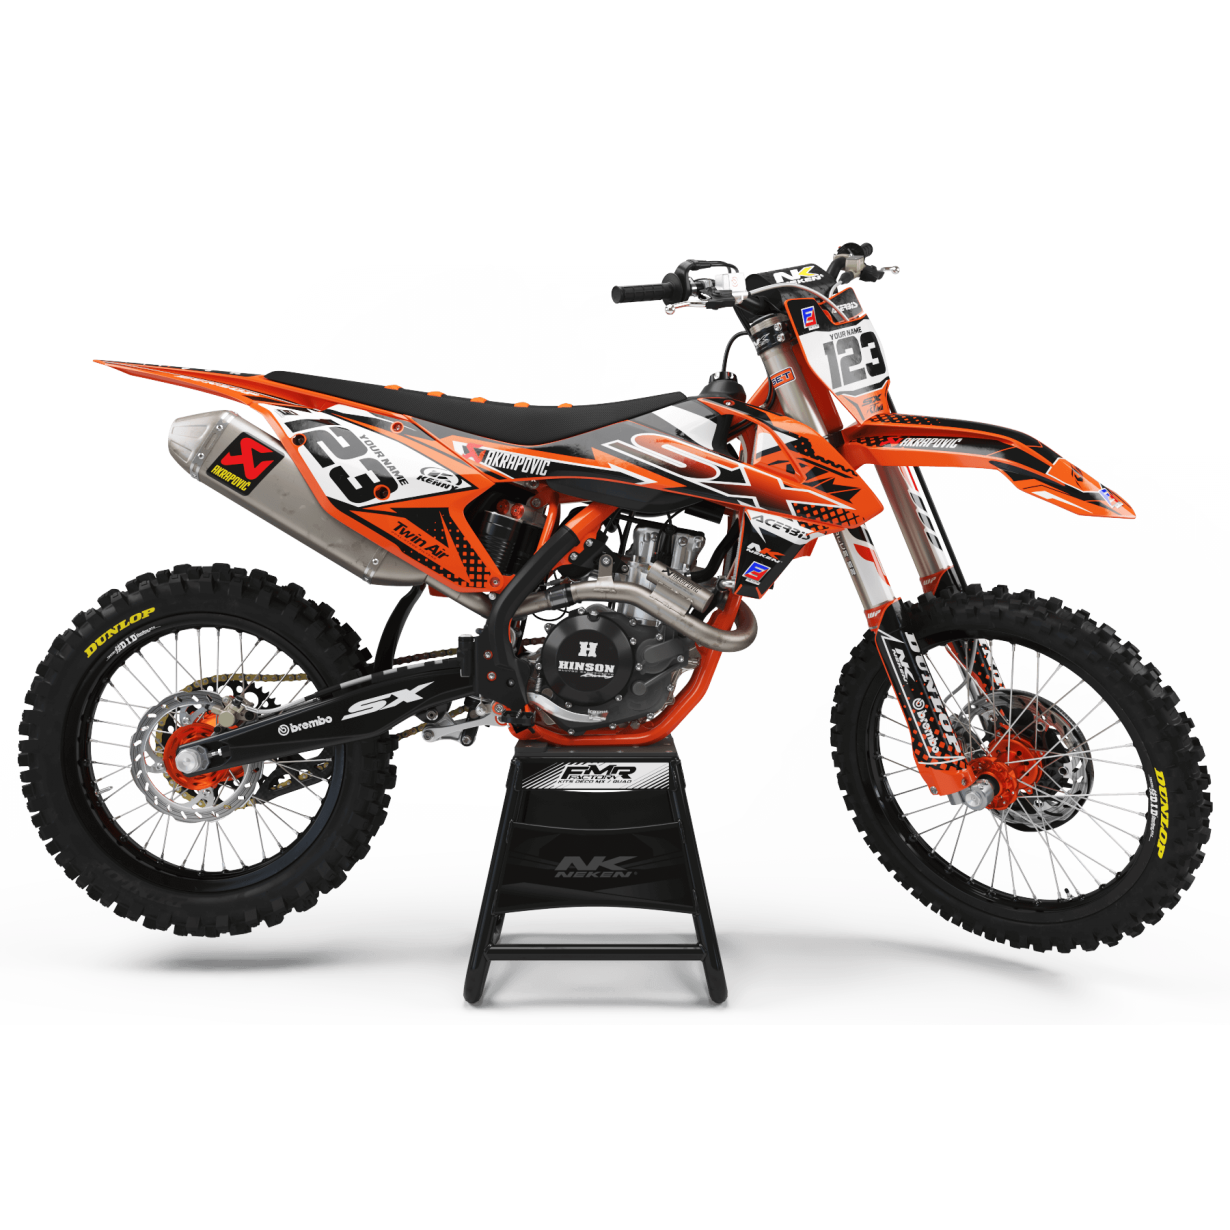 Kit déco Perso FACTORY ktm ENERGY MA33C orange